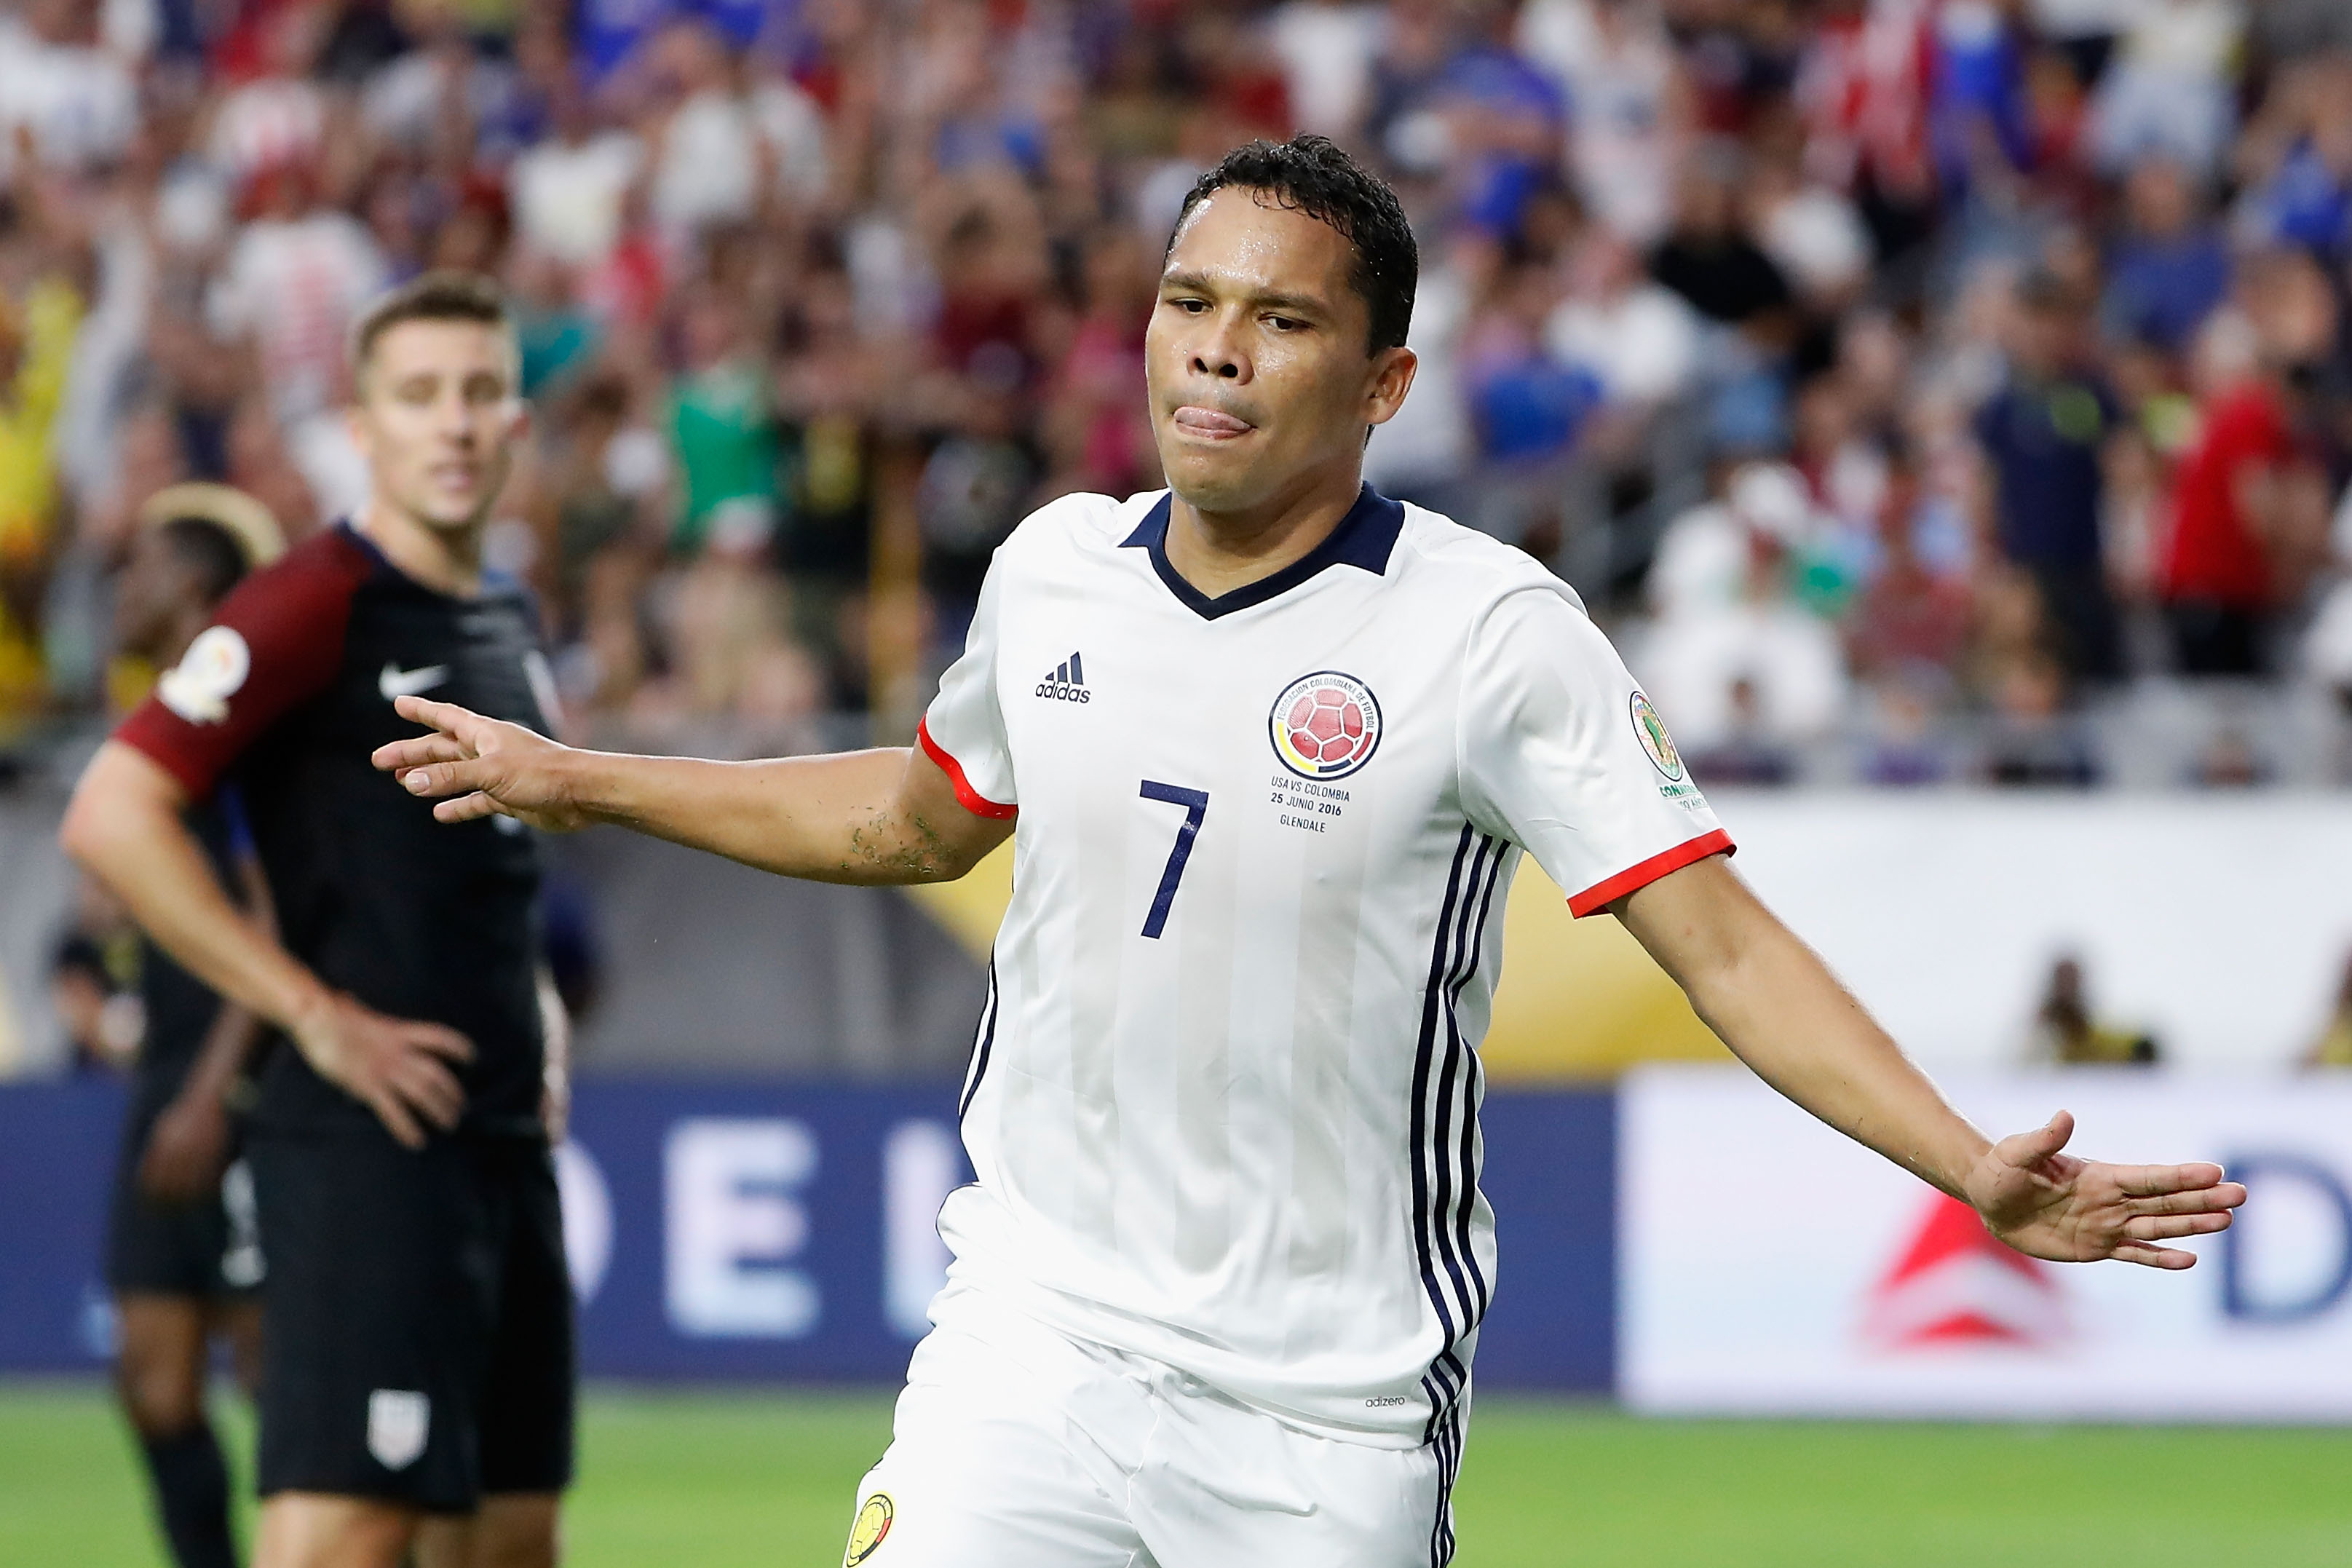 Arsenal ready to sign Carlos Bacca ahead of West Ham